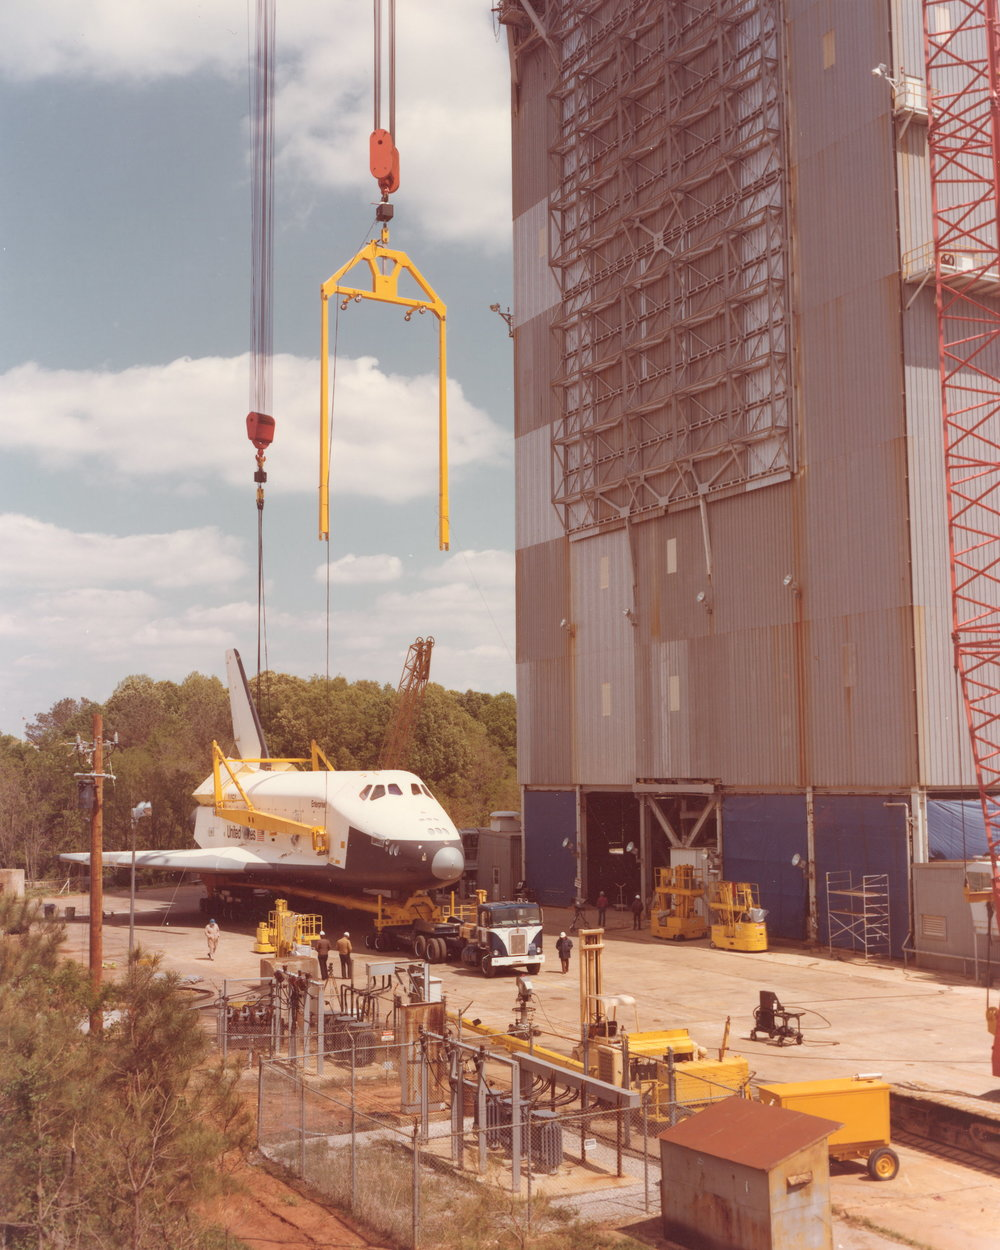 Orbiter OV101 demate on test pad.jpg